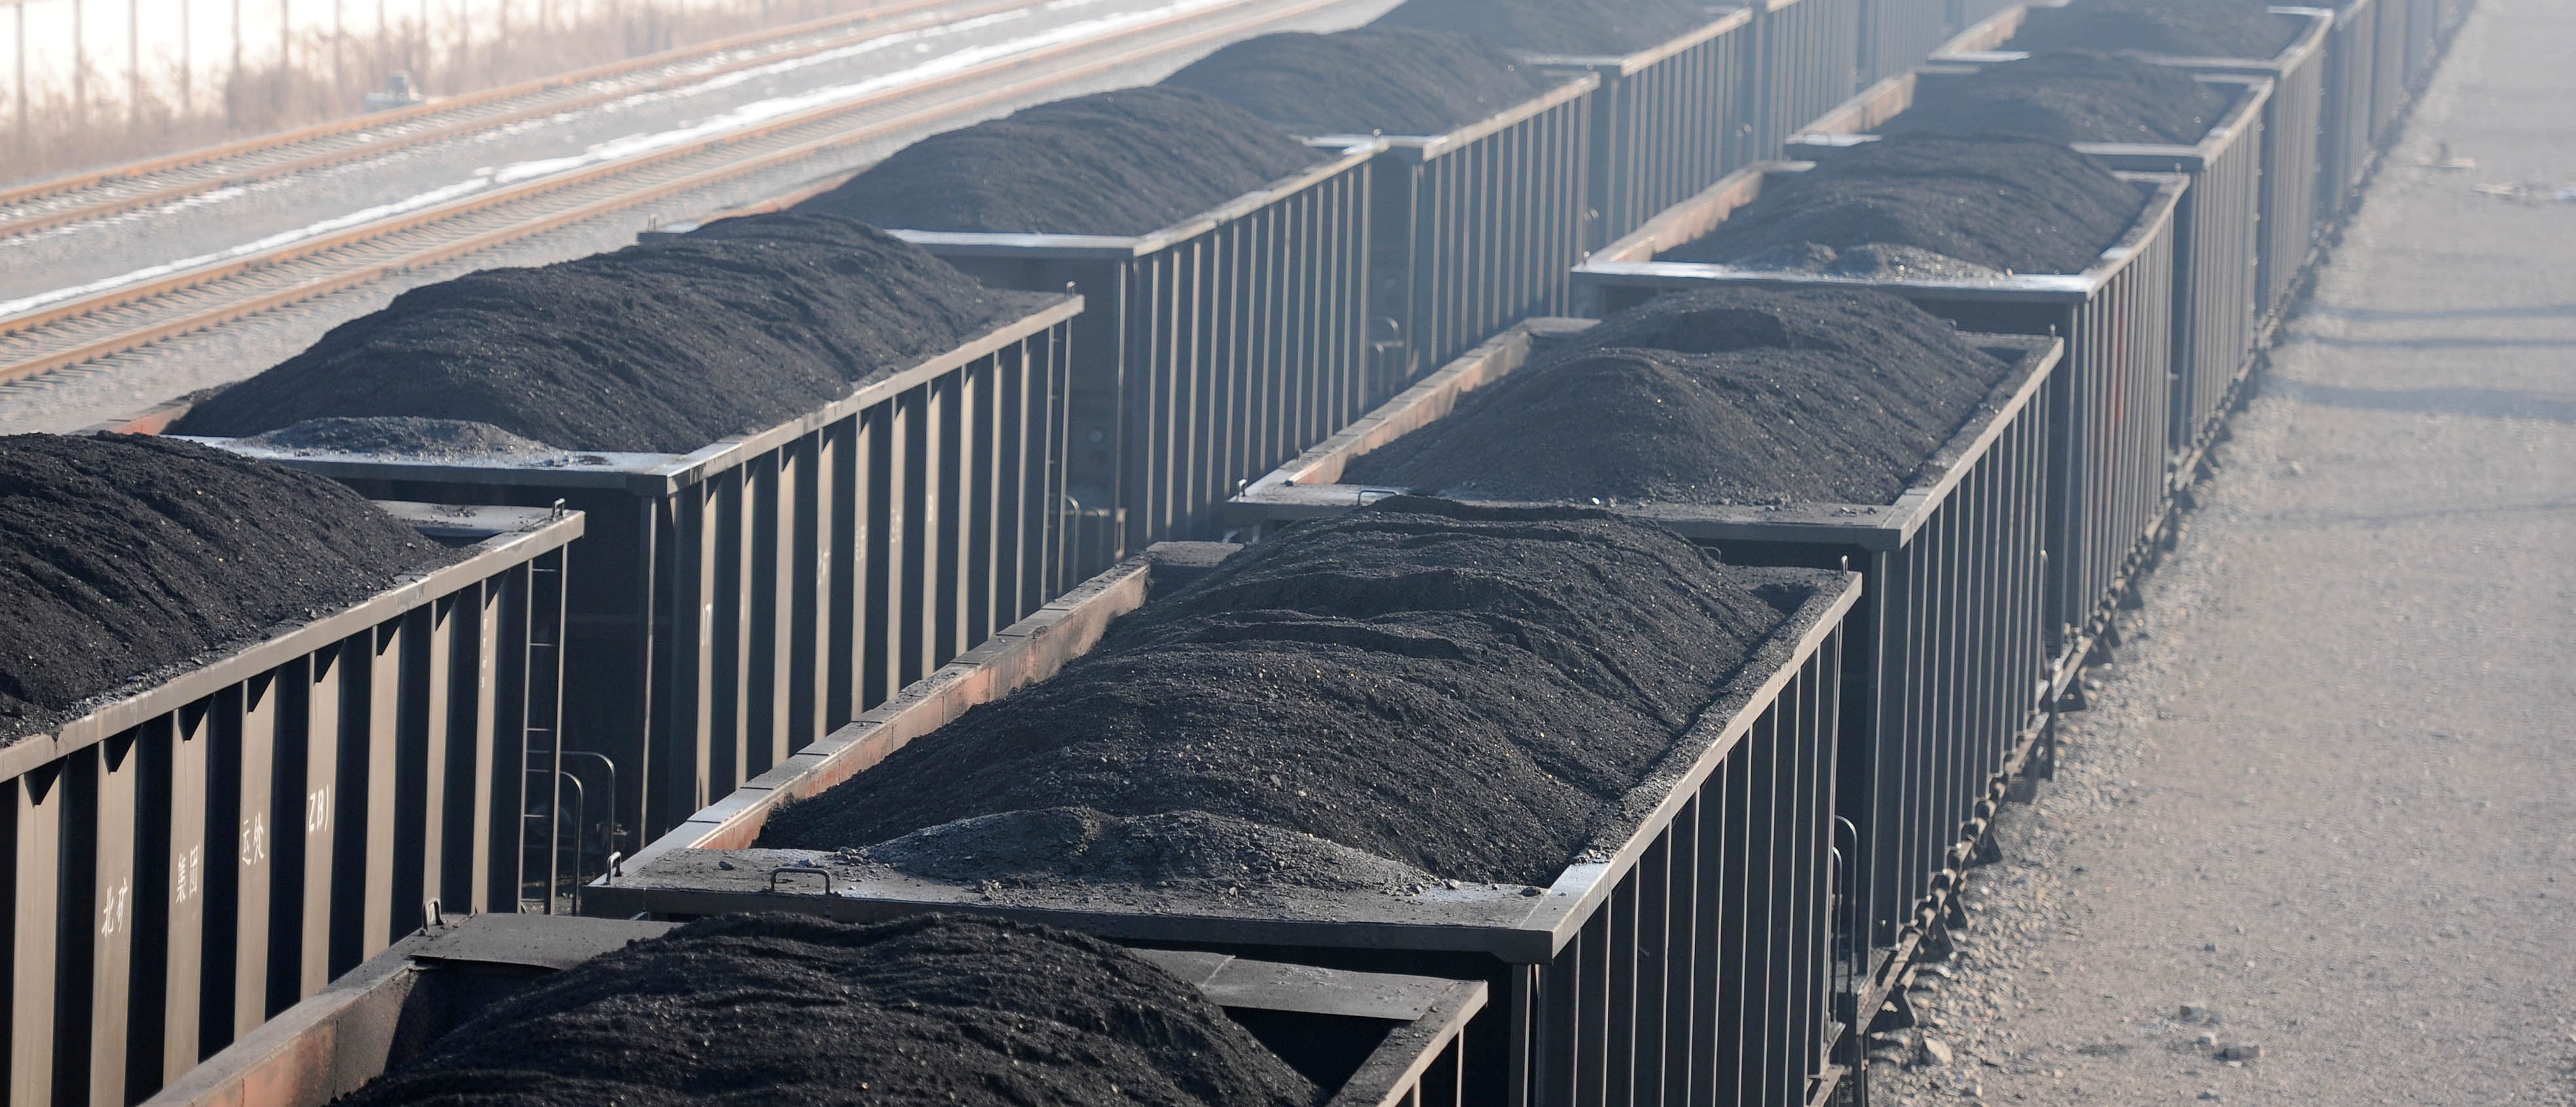 Carriages loaded with coal are seen at a mine pit of Huaibei Mining Group in Huaibei, Anhui province, China January 11, 2018. Picture taken January 11, 2018. China Daily via REUTERS ATTENTION EDITORS - THIS IMAGE WAS PROVIDED BY A THIRD PARTY. CHINA OUT.